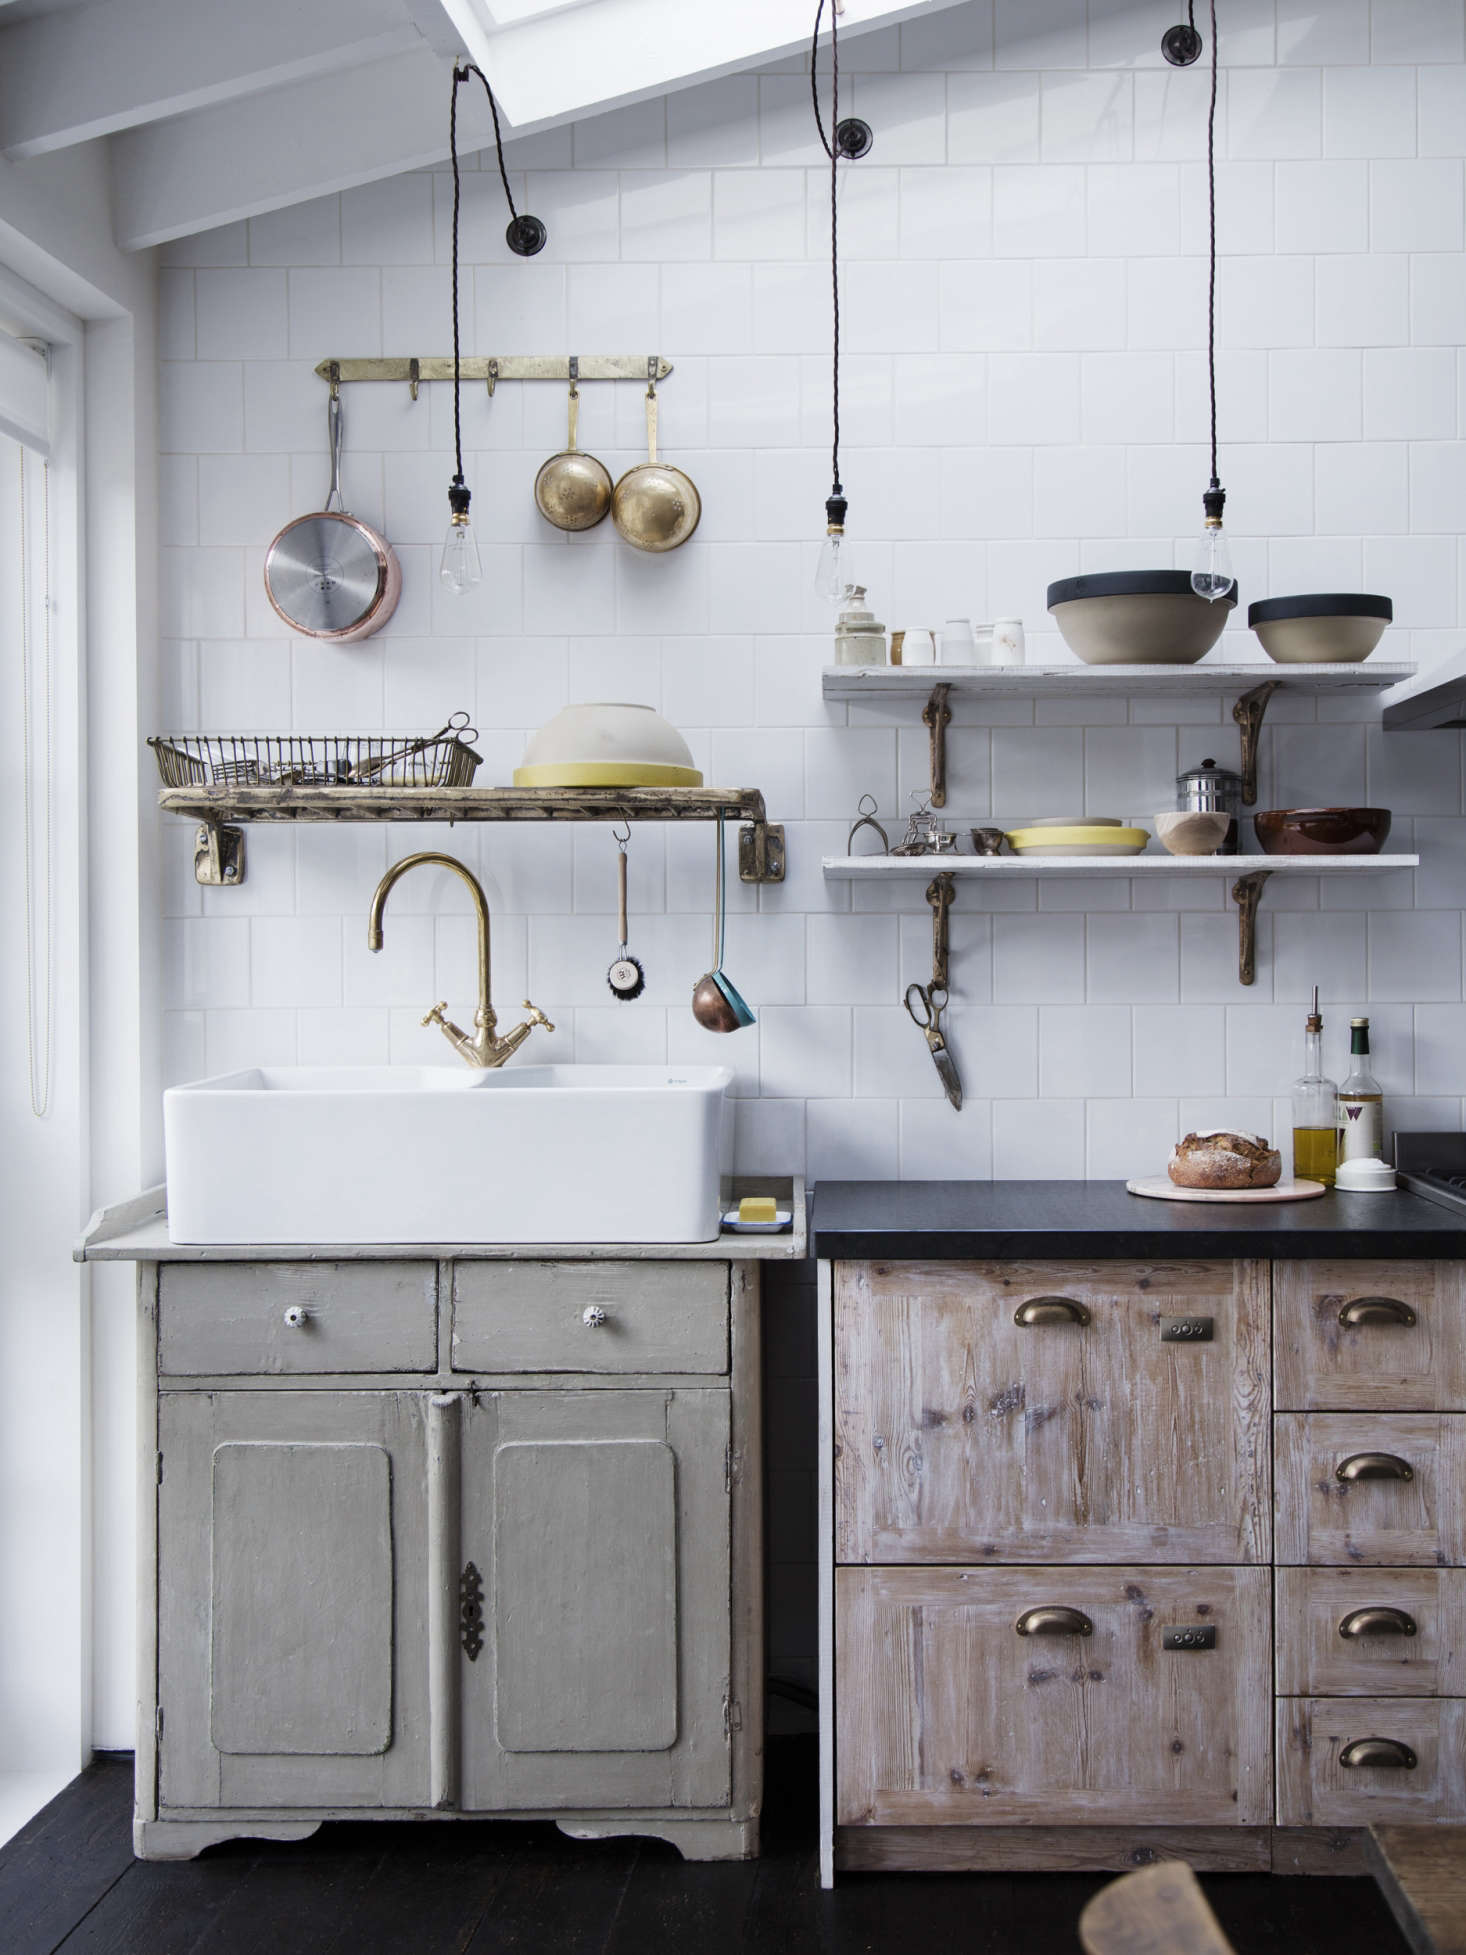 Remodeling 101 What To Know About Choosing The Right Size Kitchen Sink Remodelista